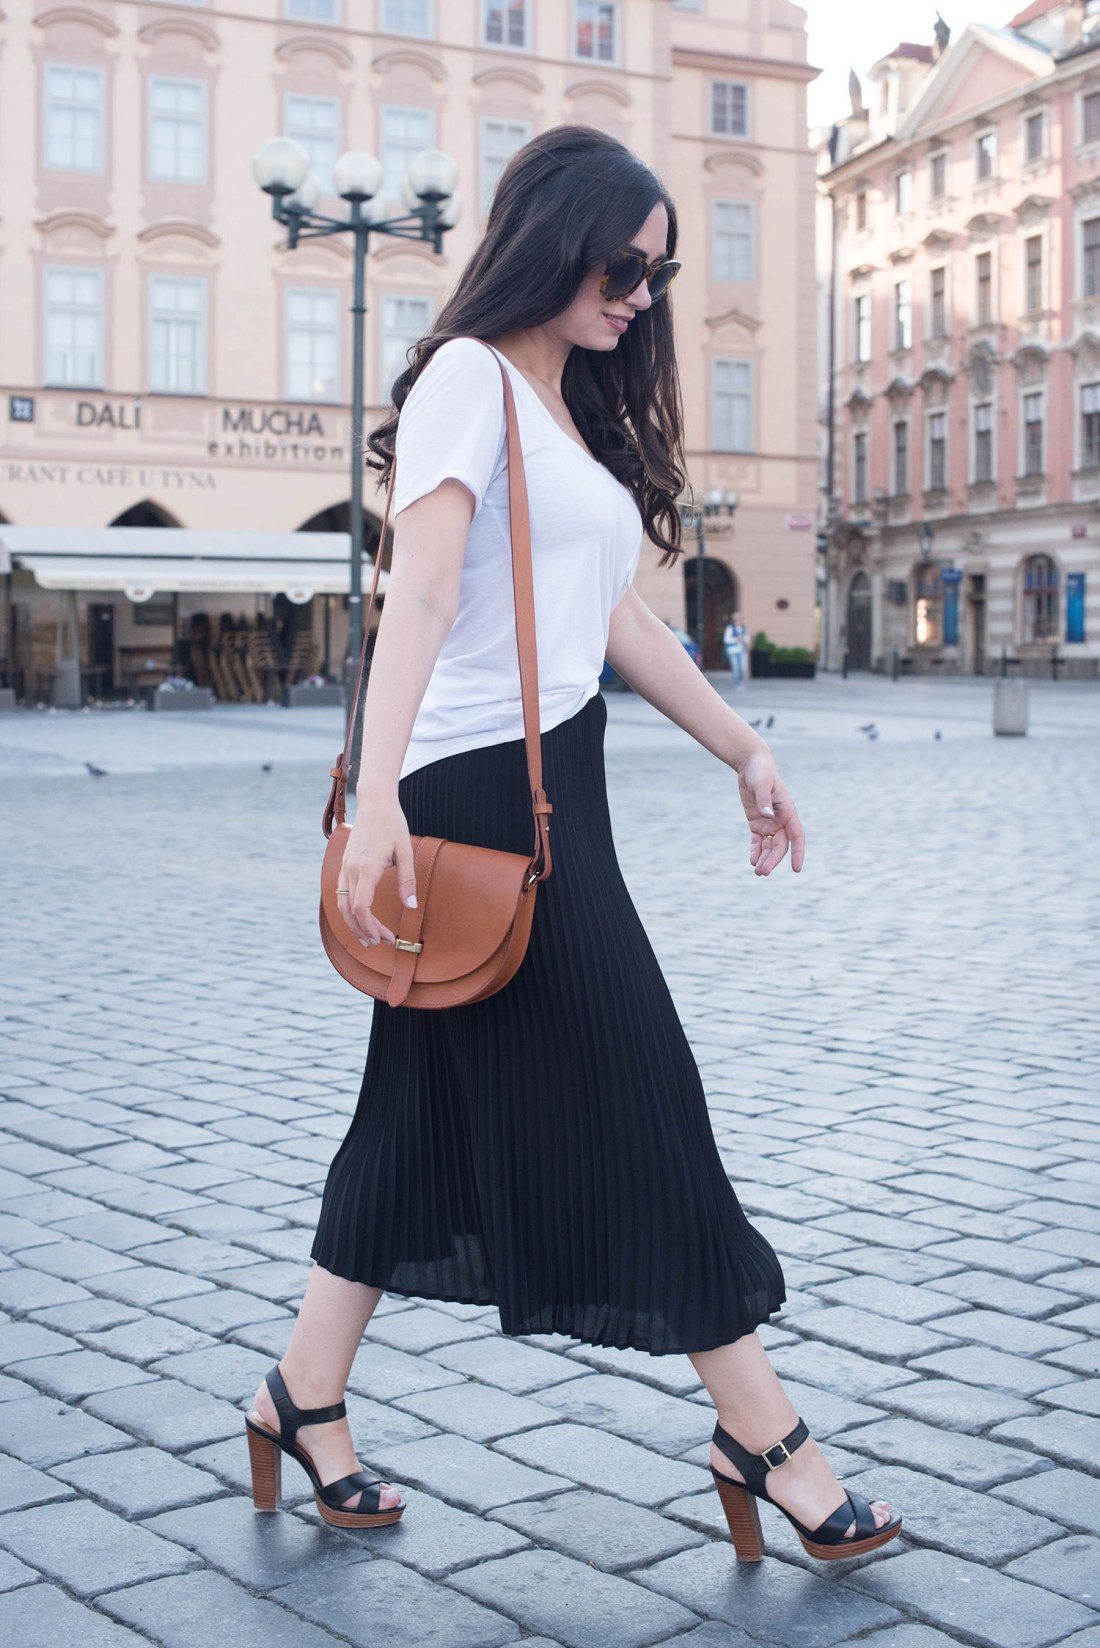 Canadian fashion blogger Cee Fardoe of Coco & Vera walks through Old Town Square in Prague carrying a Sezane Claude bag and wearing a black Aritzia skirt